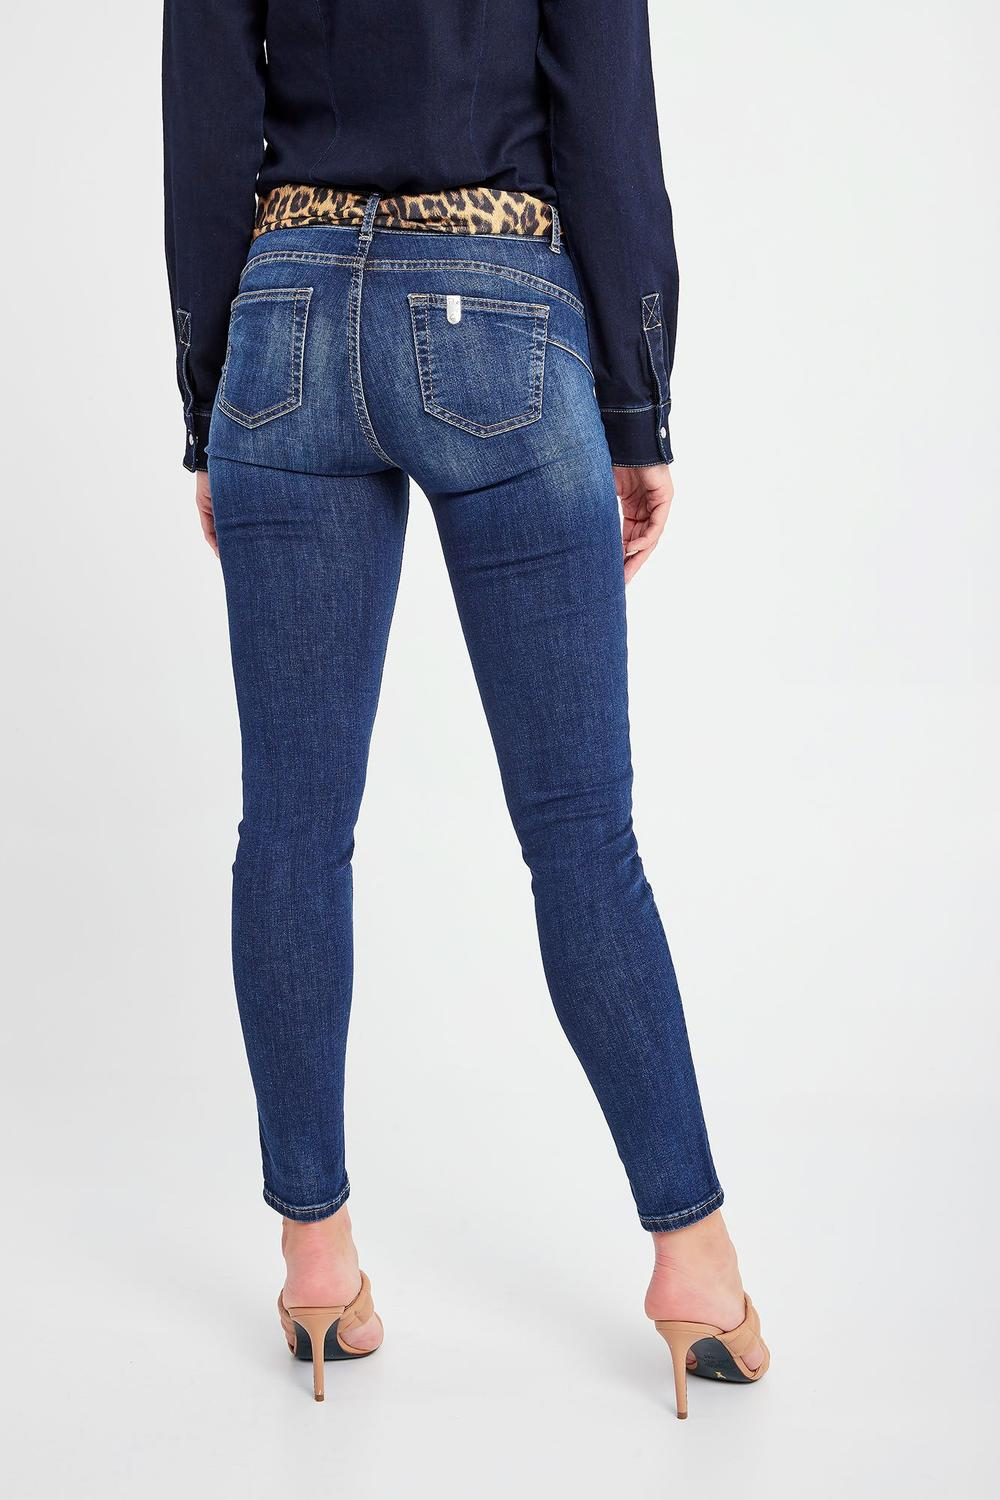 Jeans Donna -  DIVINE BOTTOM UP Jeans stretch